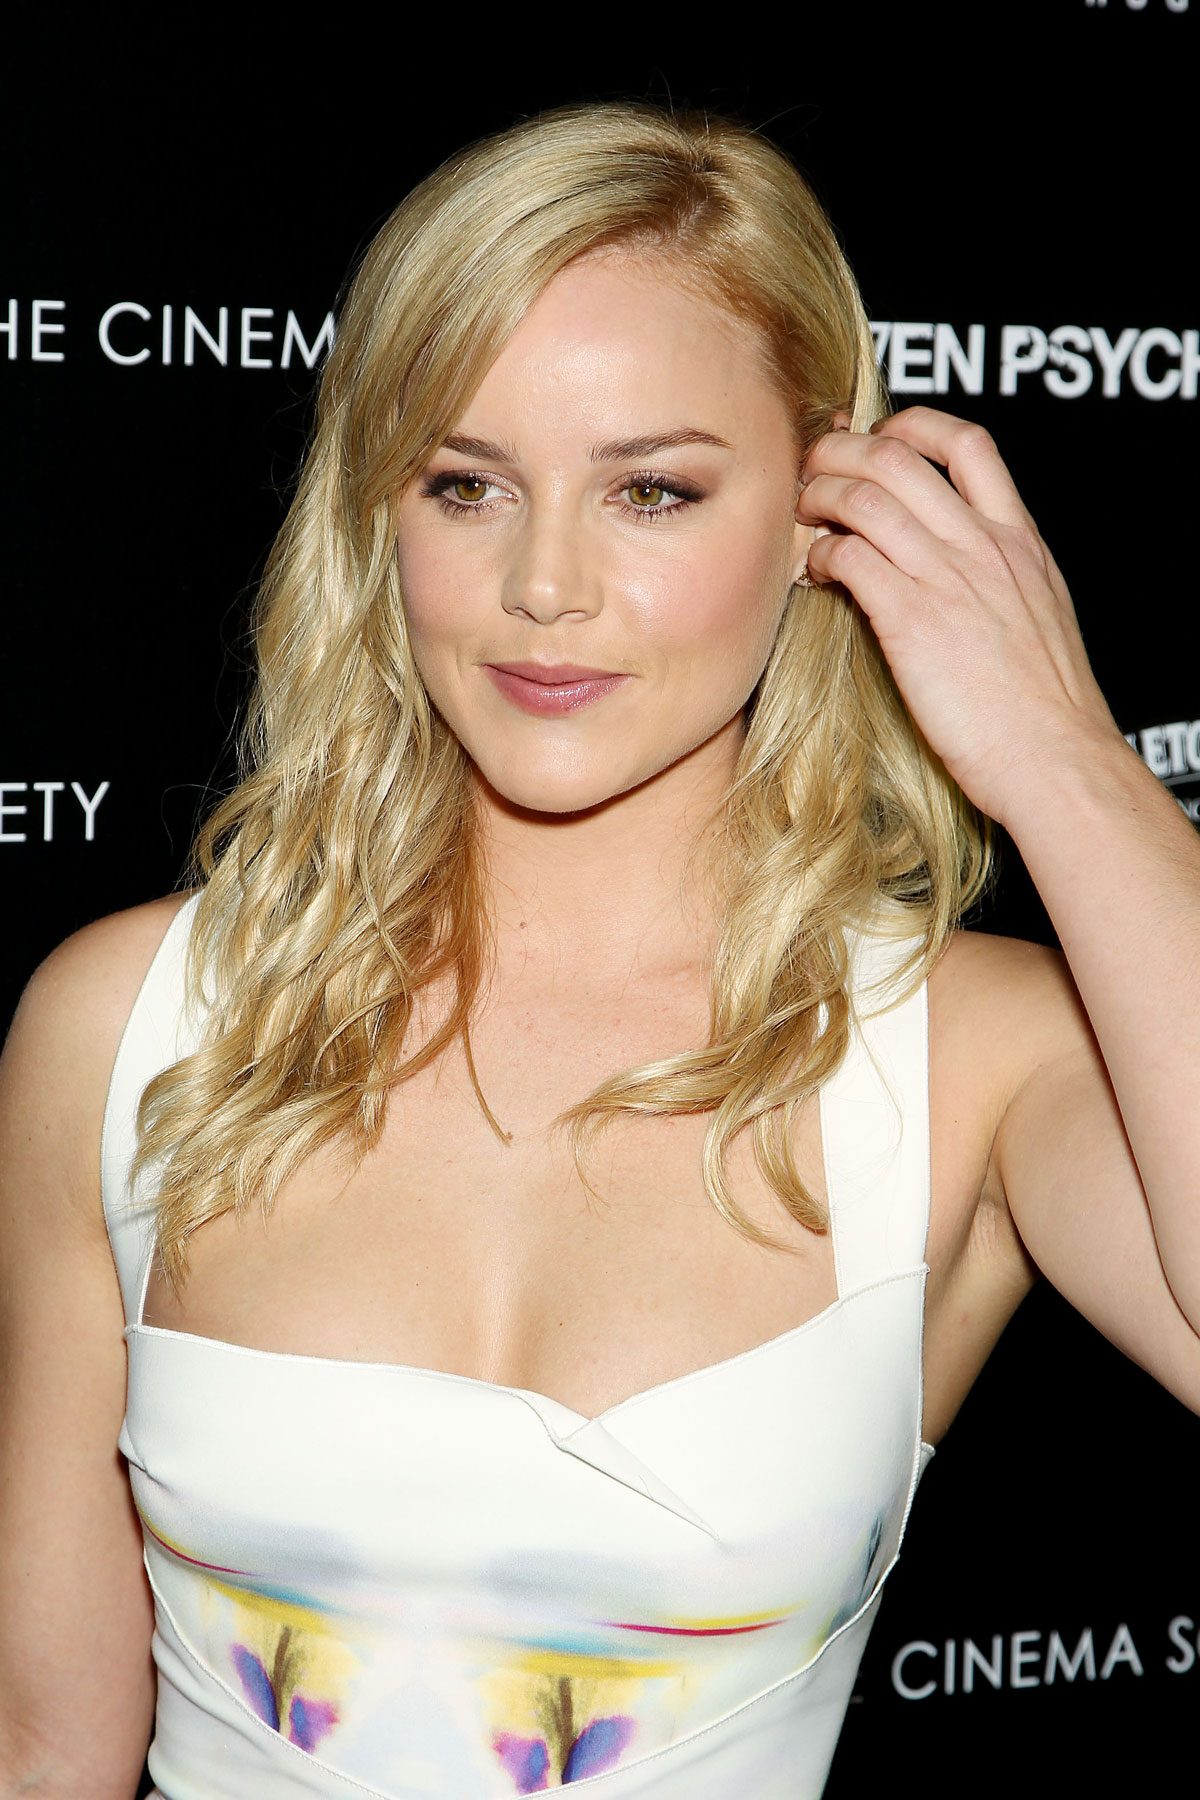 ABBIE CORNISH at Seven Psychopaths Premiere in New York - HawtCelebs ... Abbie Cornish